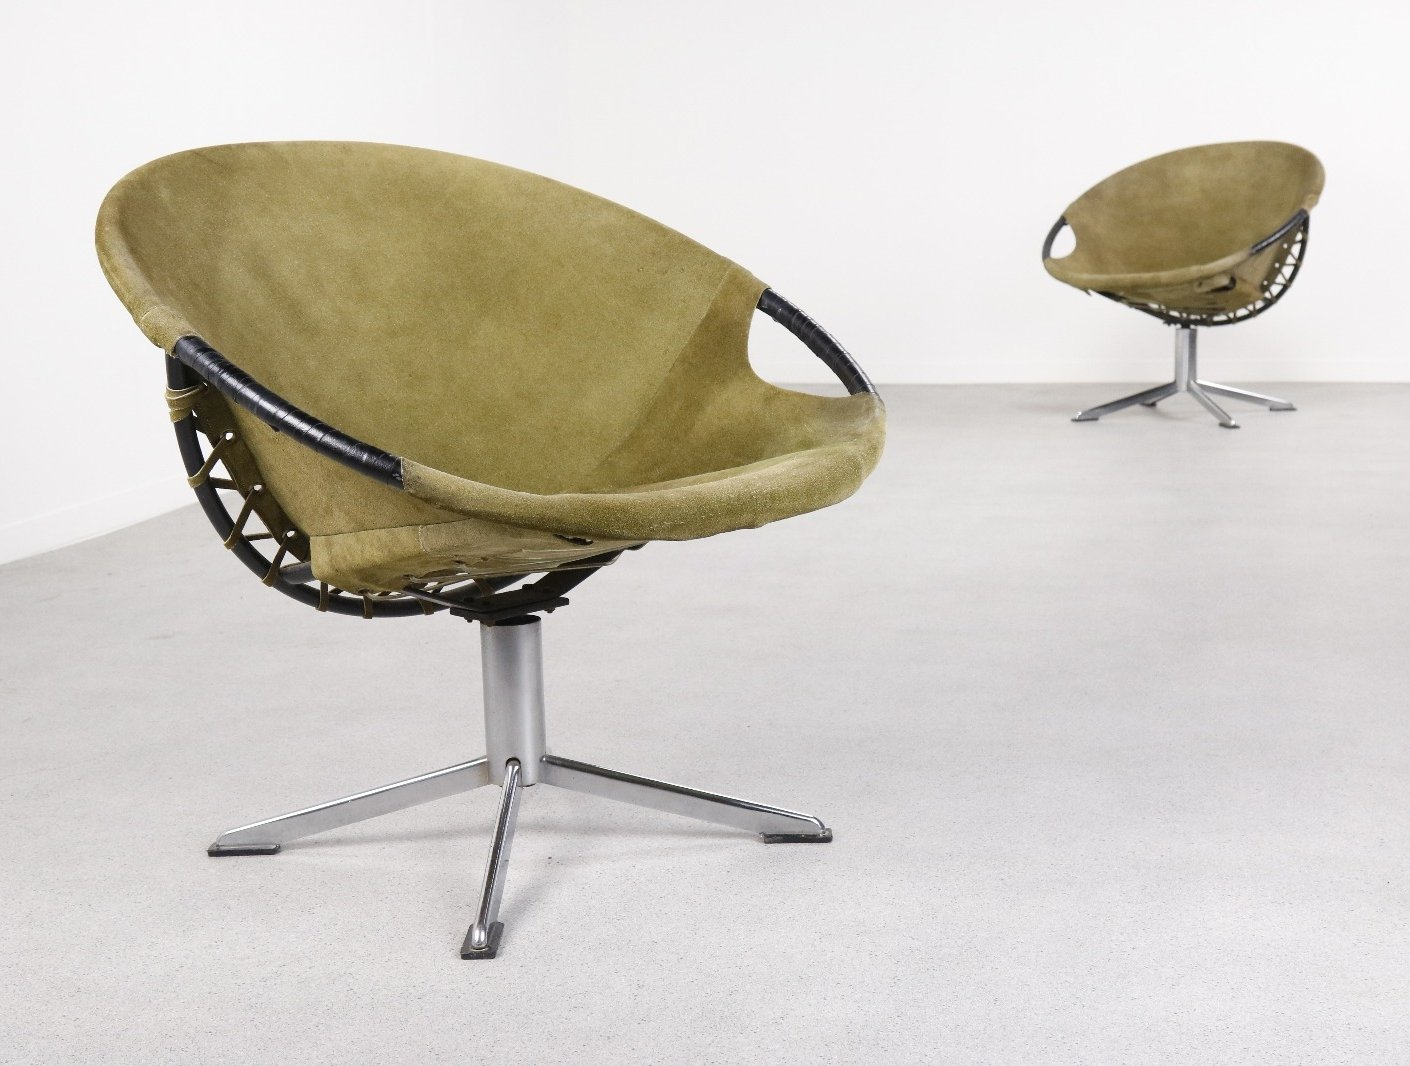 Rare Circle swivel lounge chairs by Lusch Germany 1960s